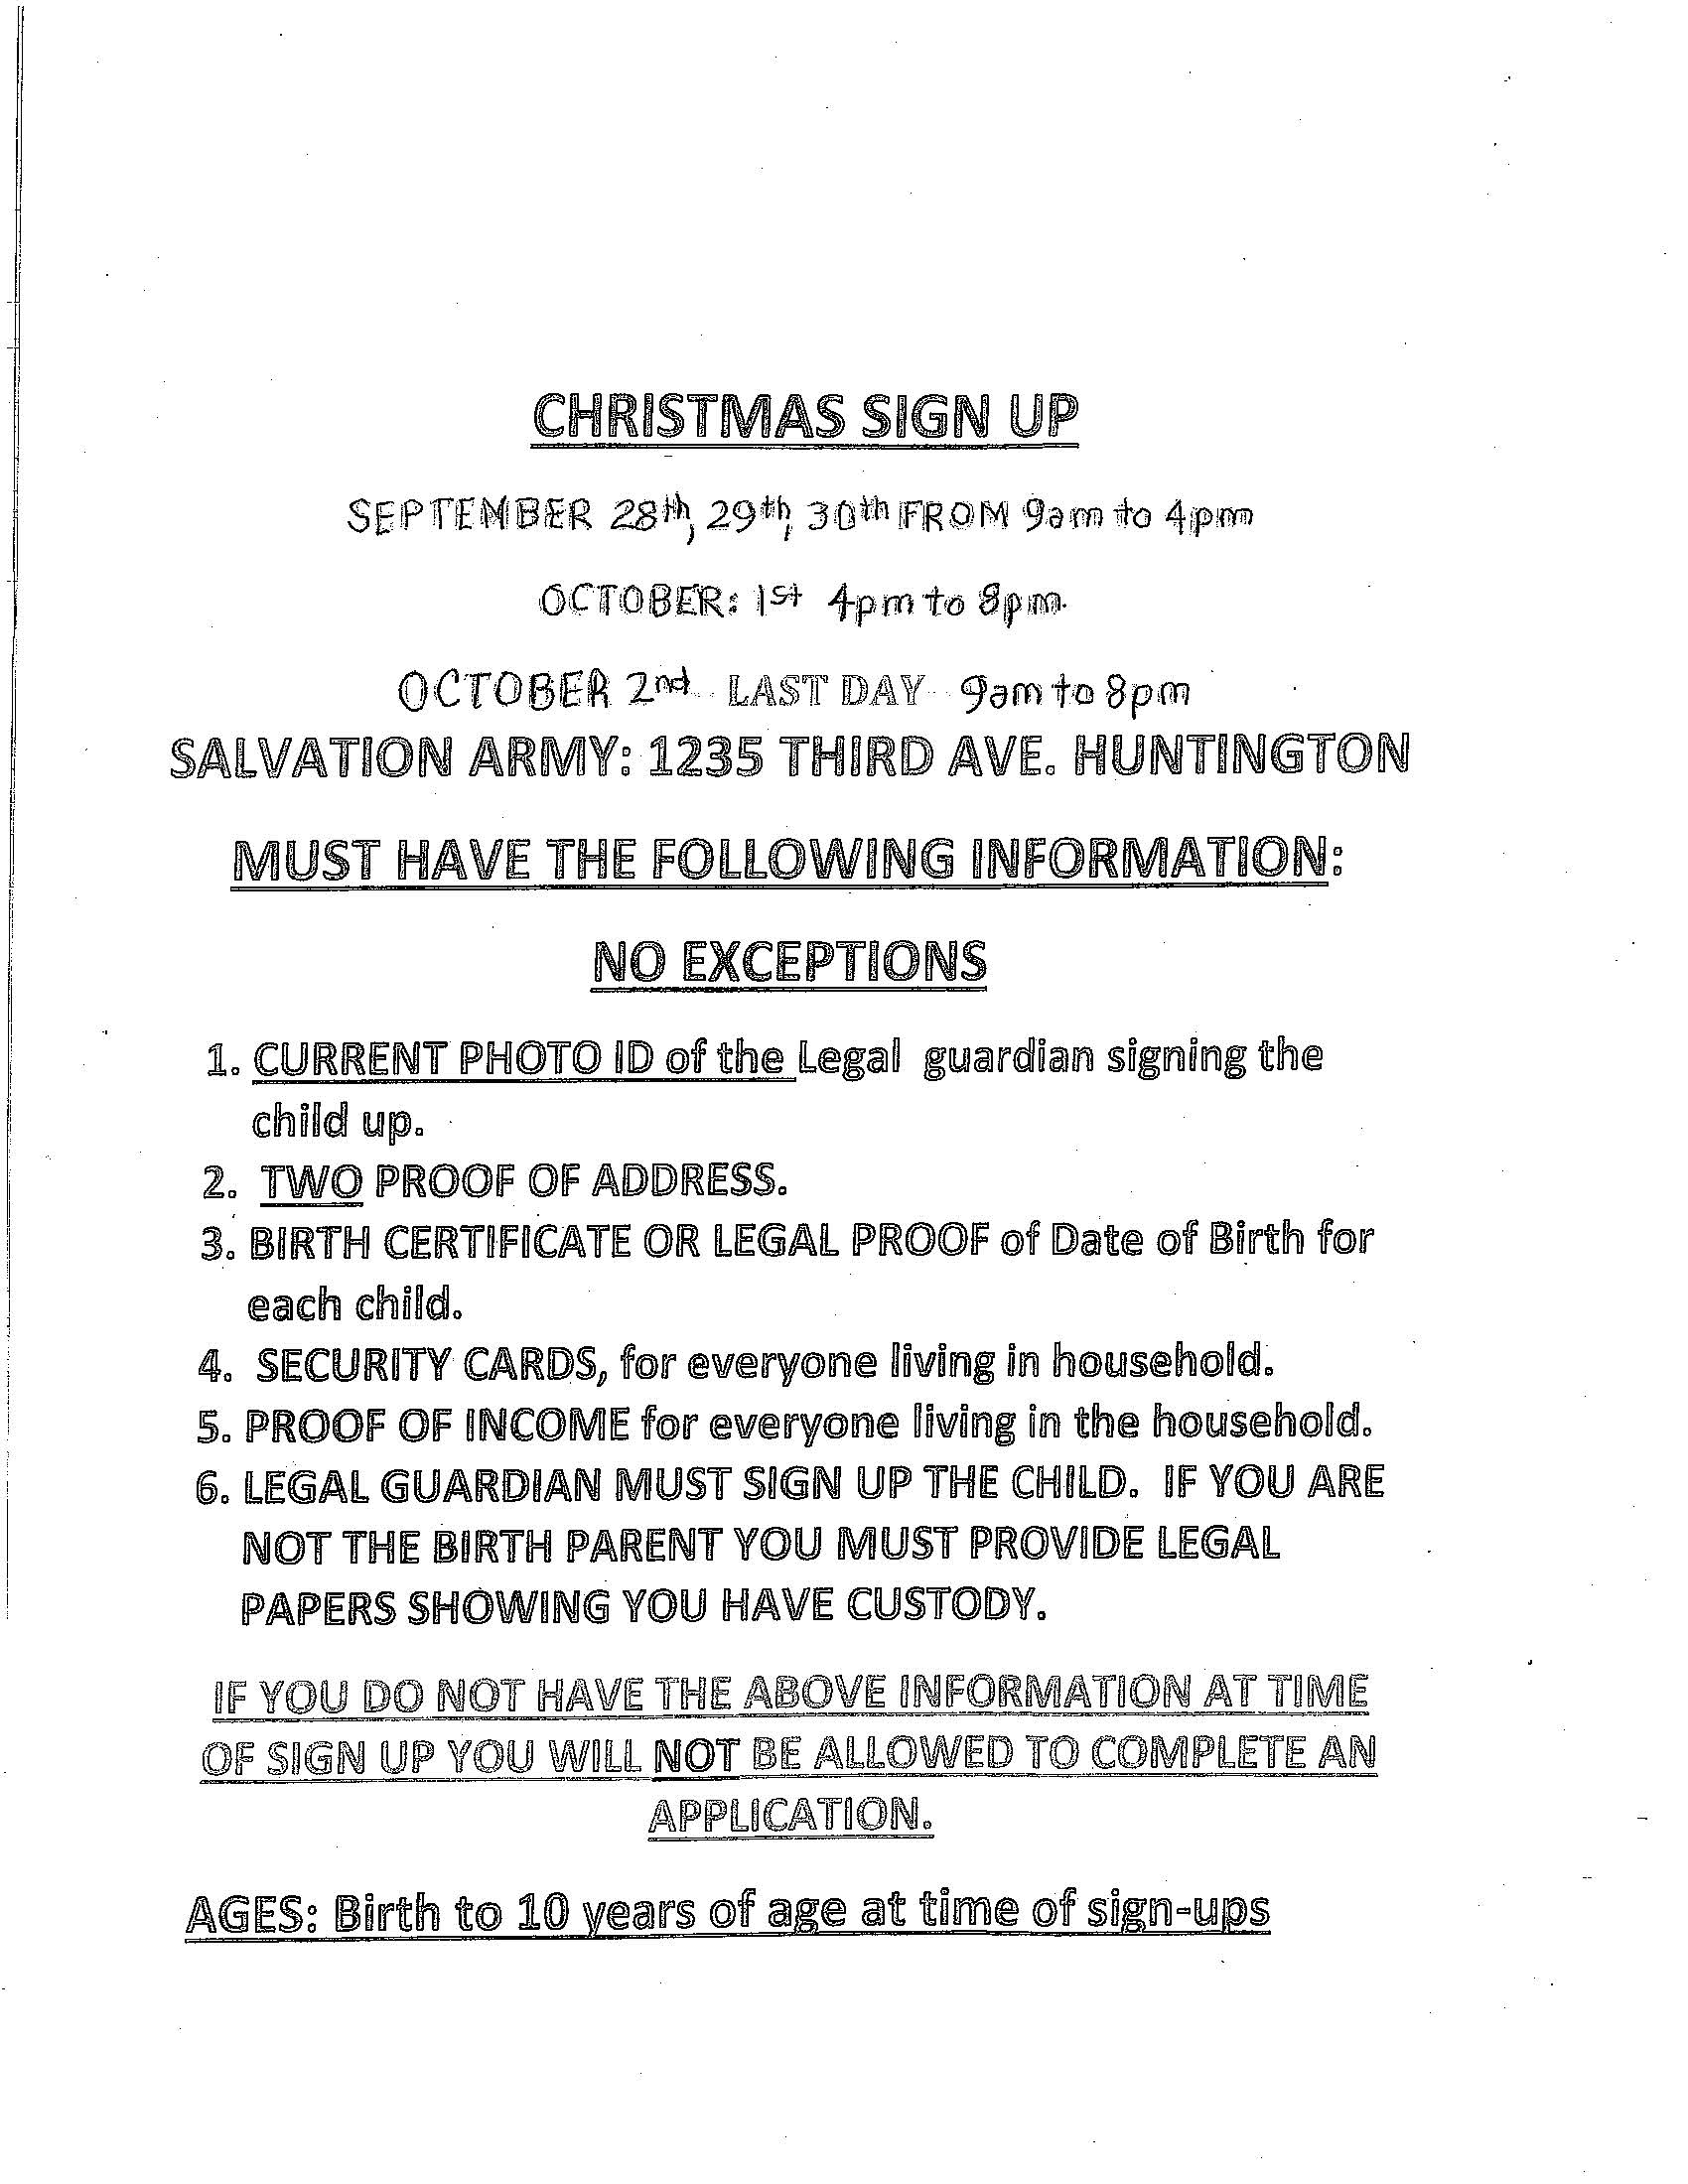 Salvation Army Christmas Sign up 9-28 to 10-2-15